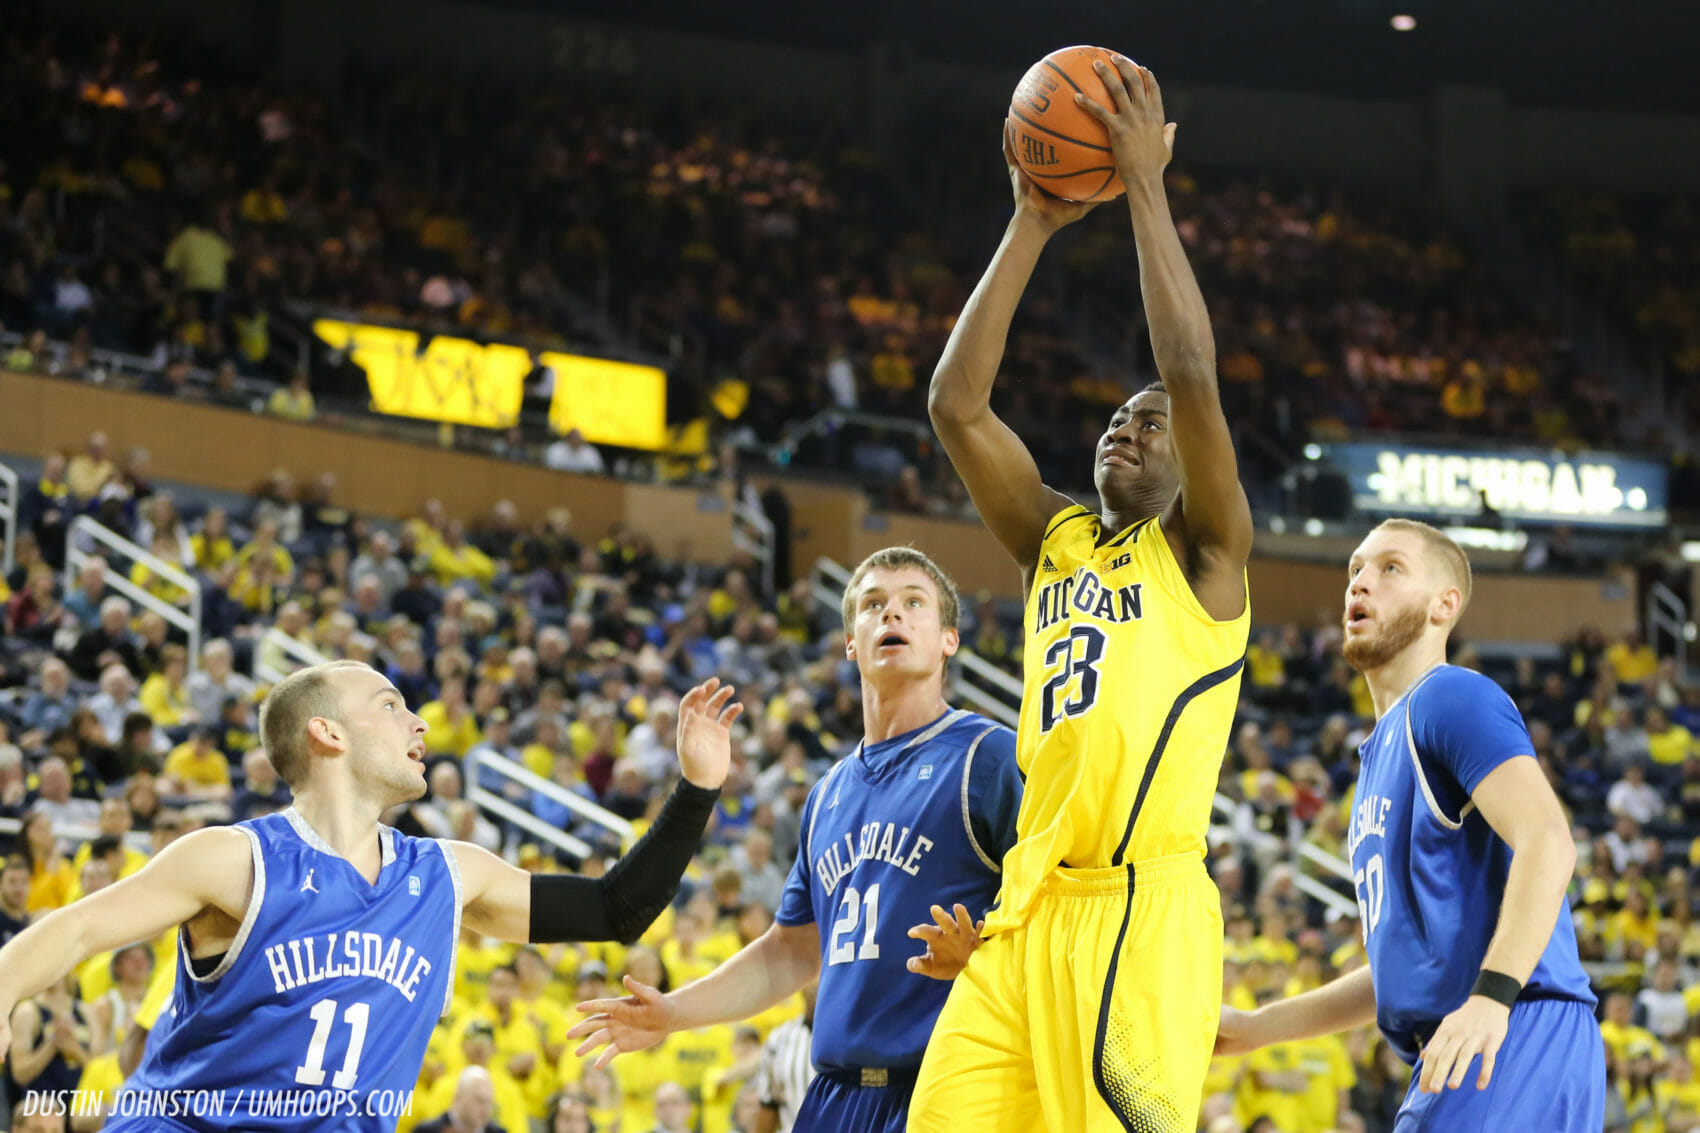 Michigan 92, Hillsdale 68-24